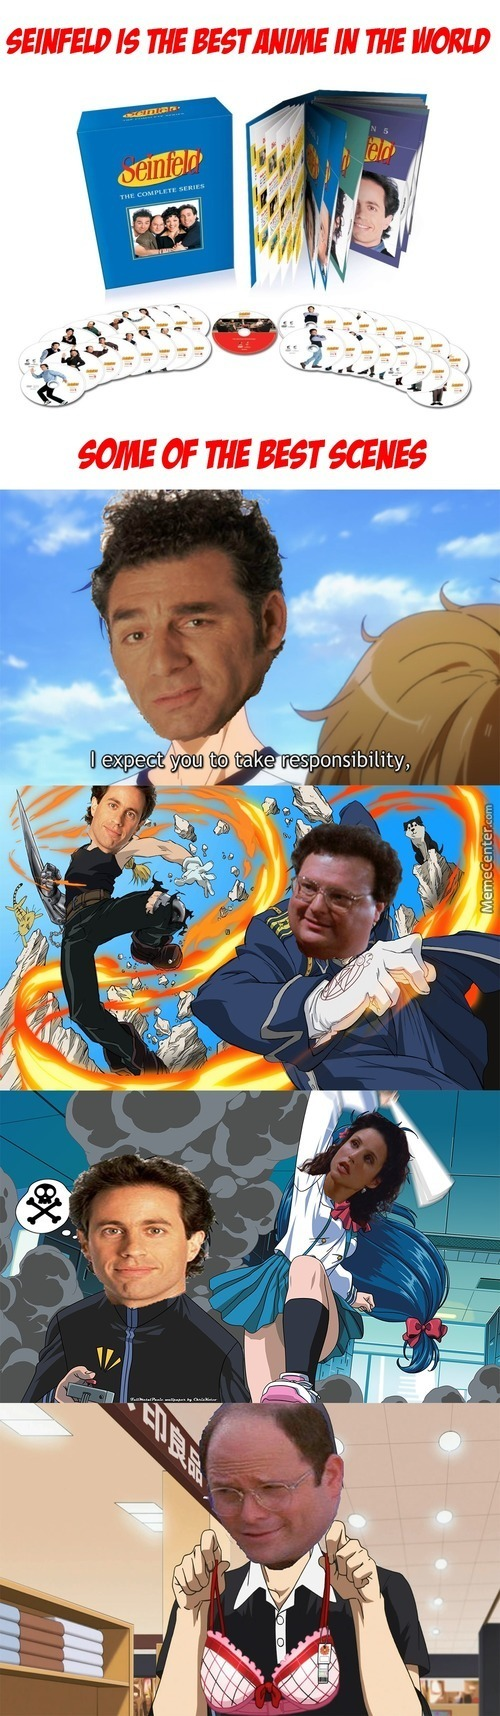 Seinfeld Is The Best Anime In The World